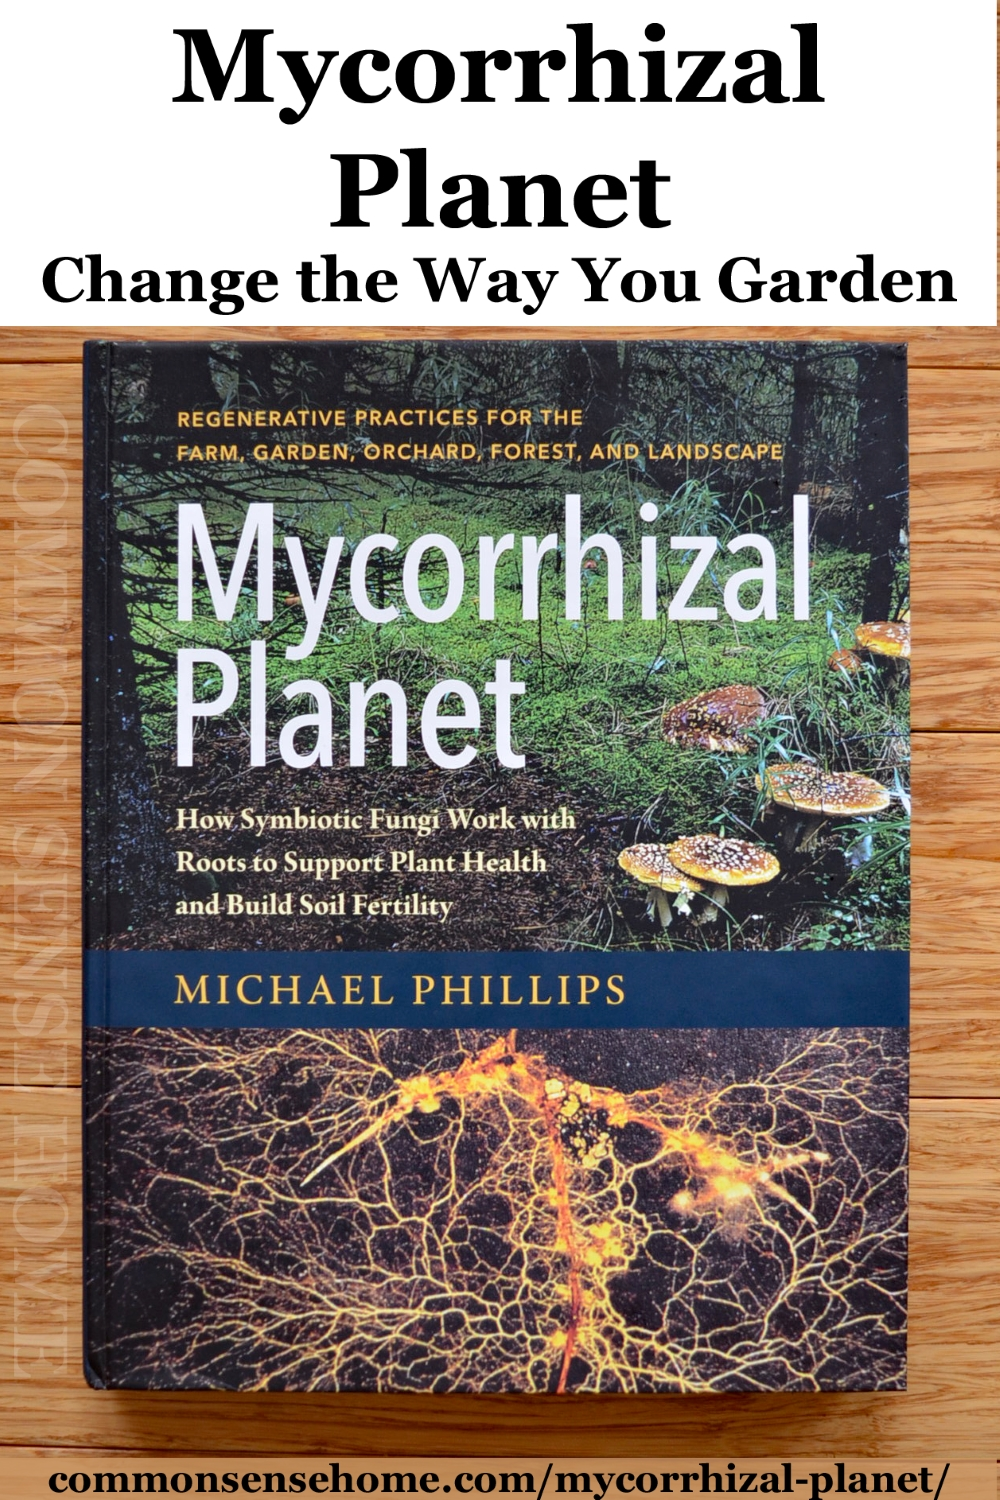 Mycorrhizal Planet book